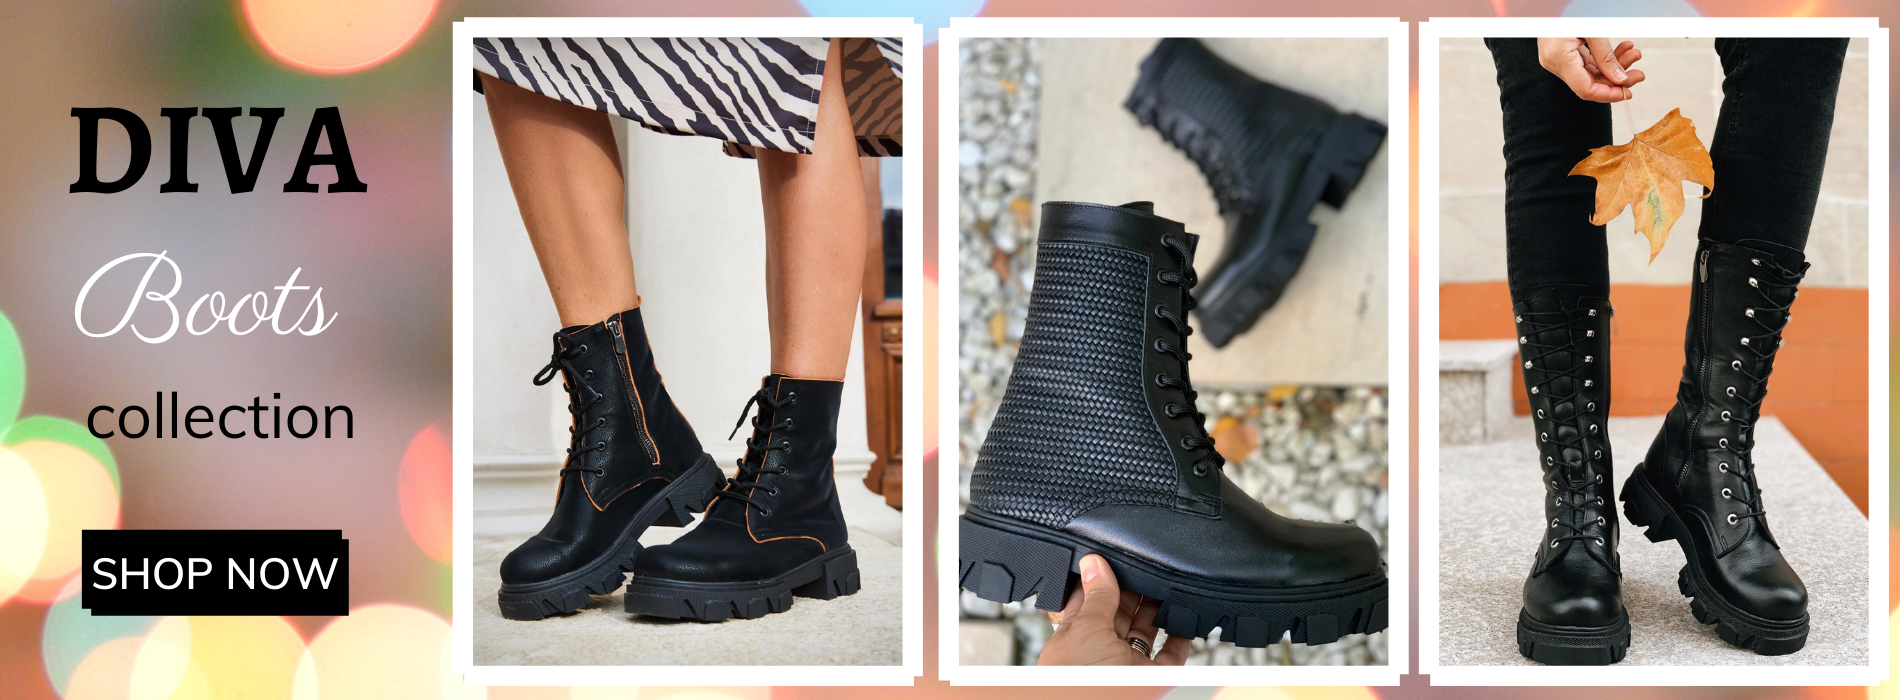 DIVA boots collection